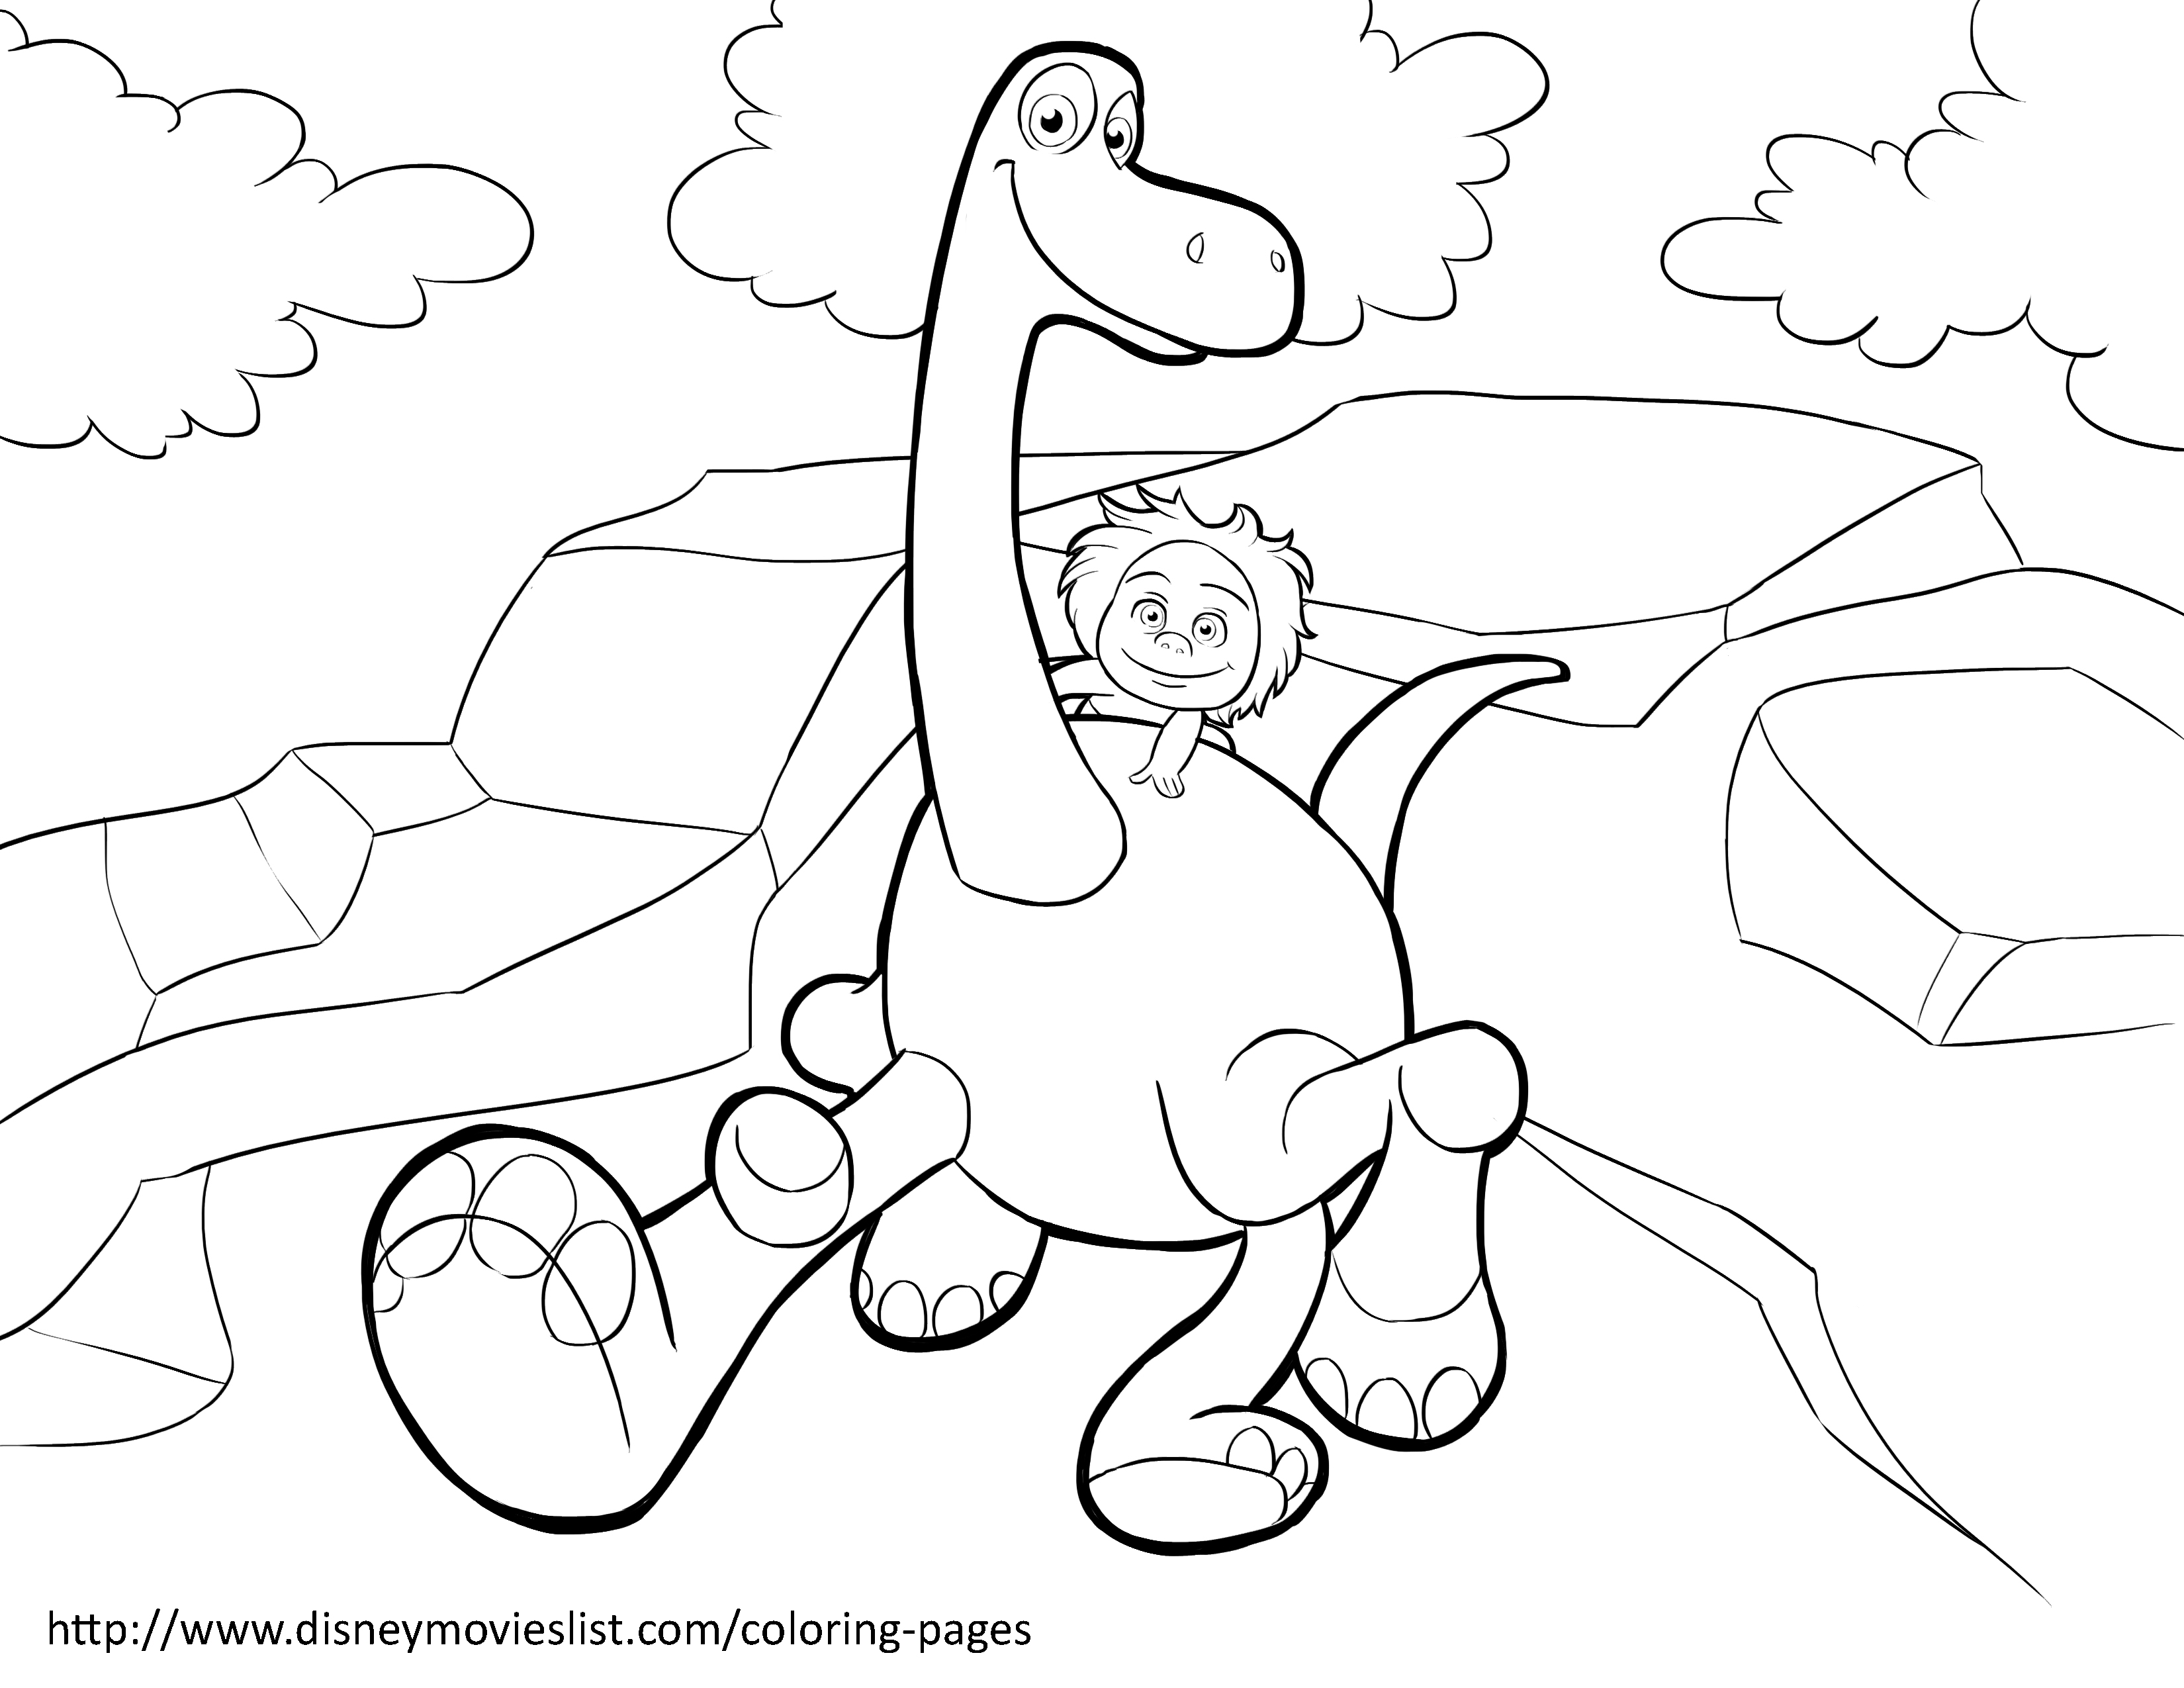 3300x2550 Disney's The Good Dinosaur Coloring Pages Sheet, Free Disney